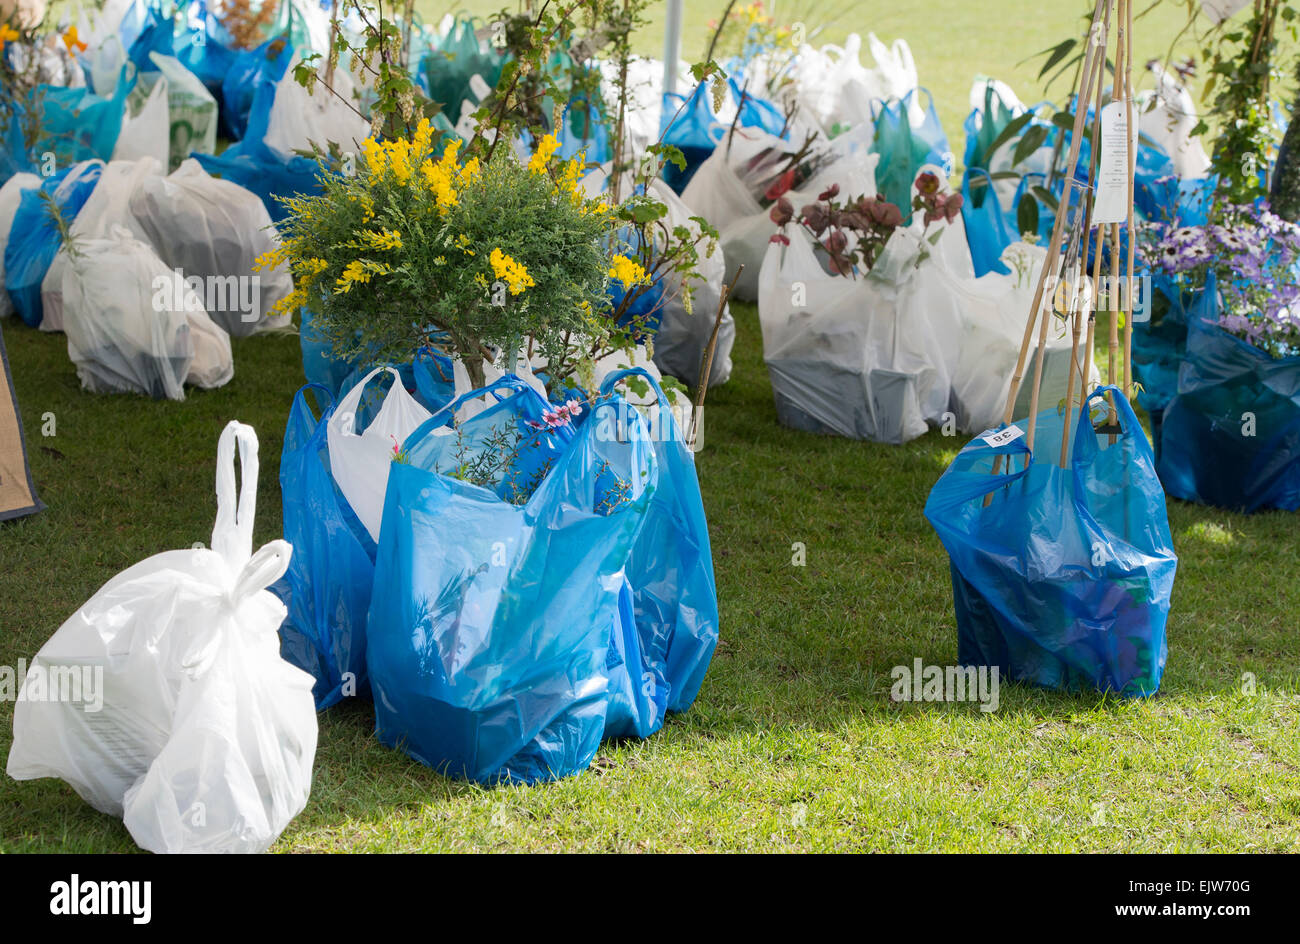 Bought flowers in plastic bags at a plant fair. UK - Stock Image